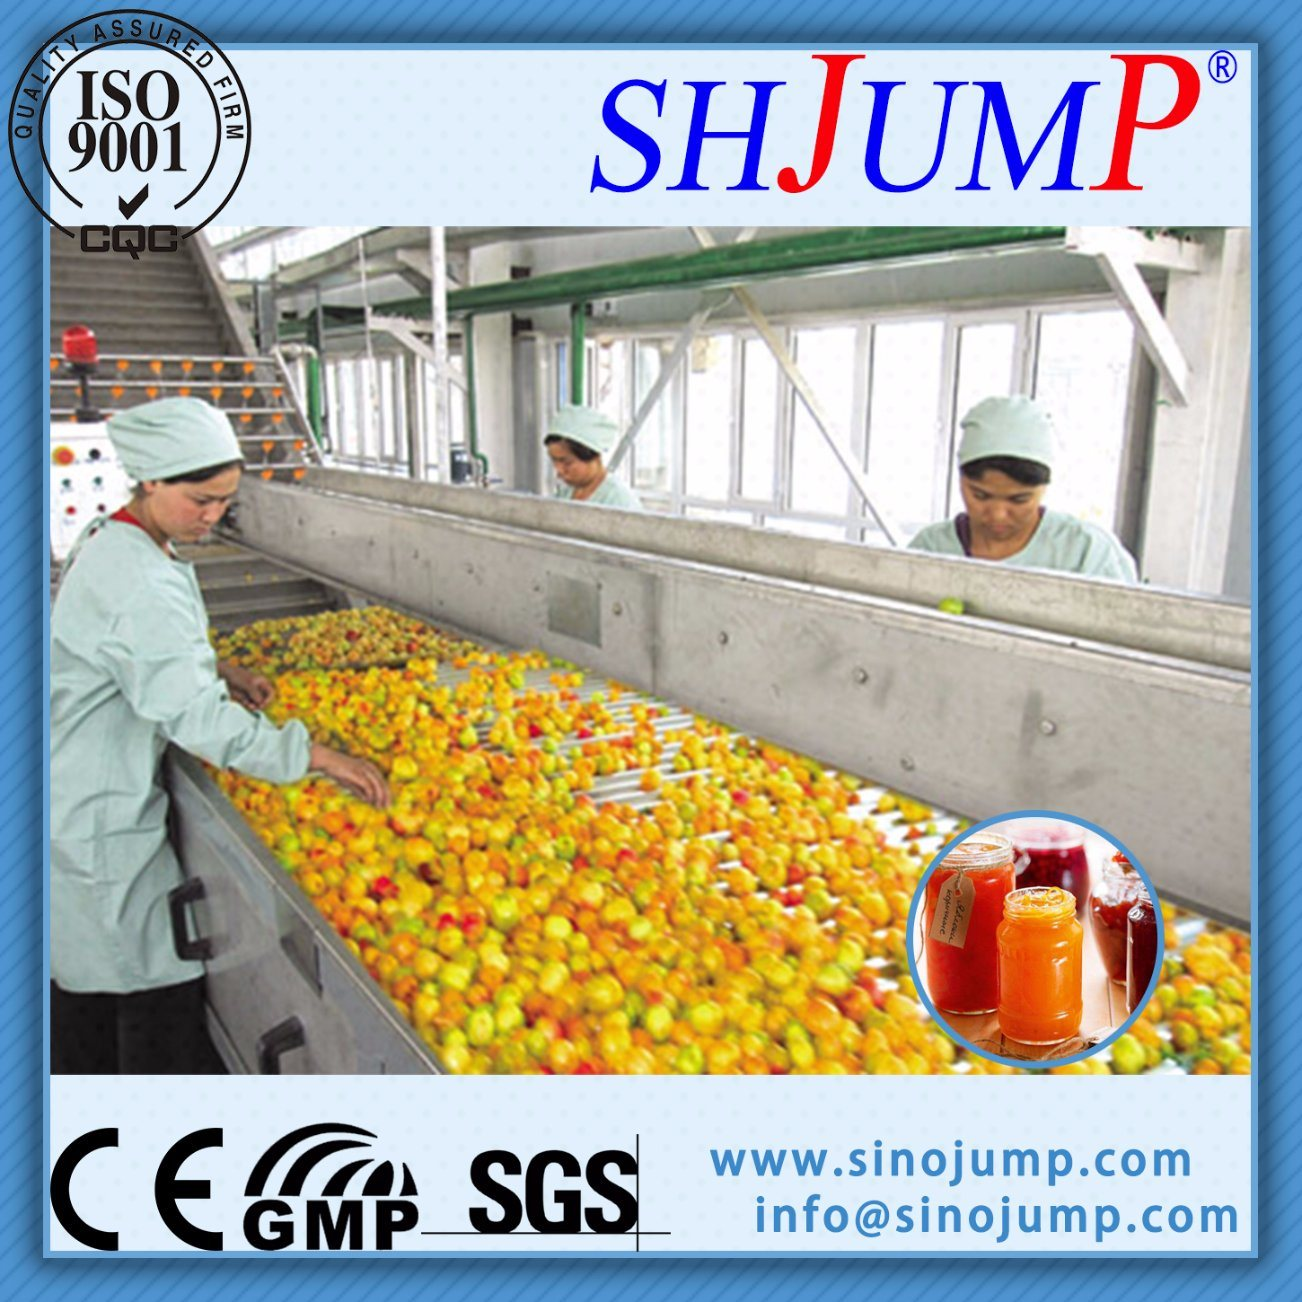 Loquat Juice and Loquat Syrup Production Machinery Export Worldwide